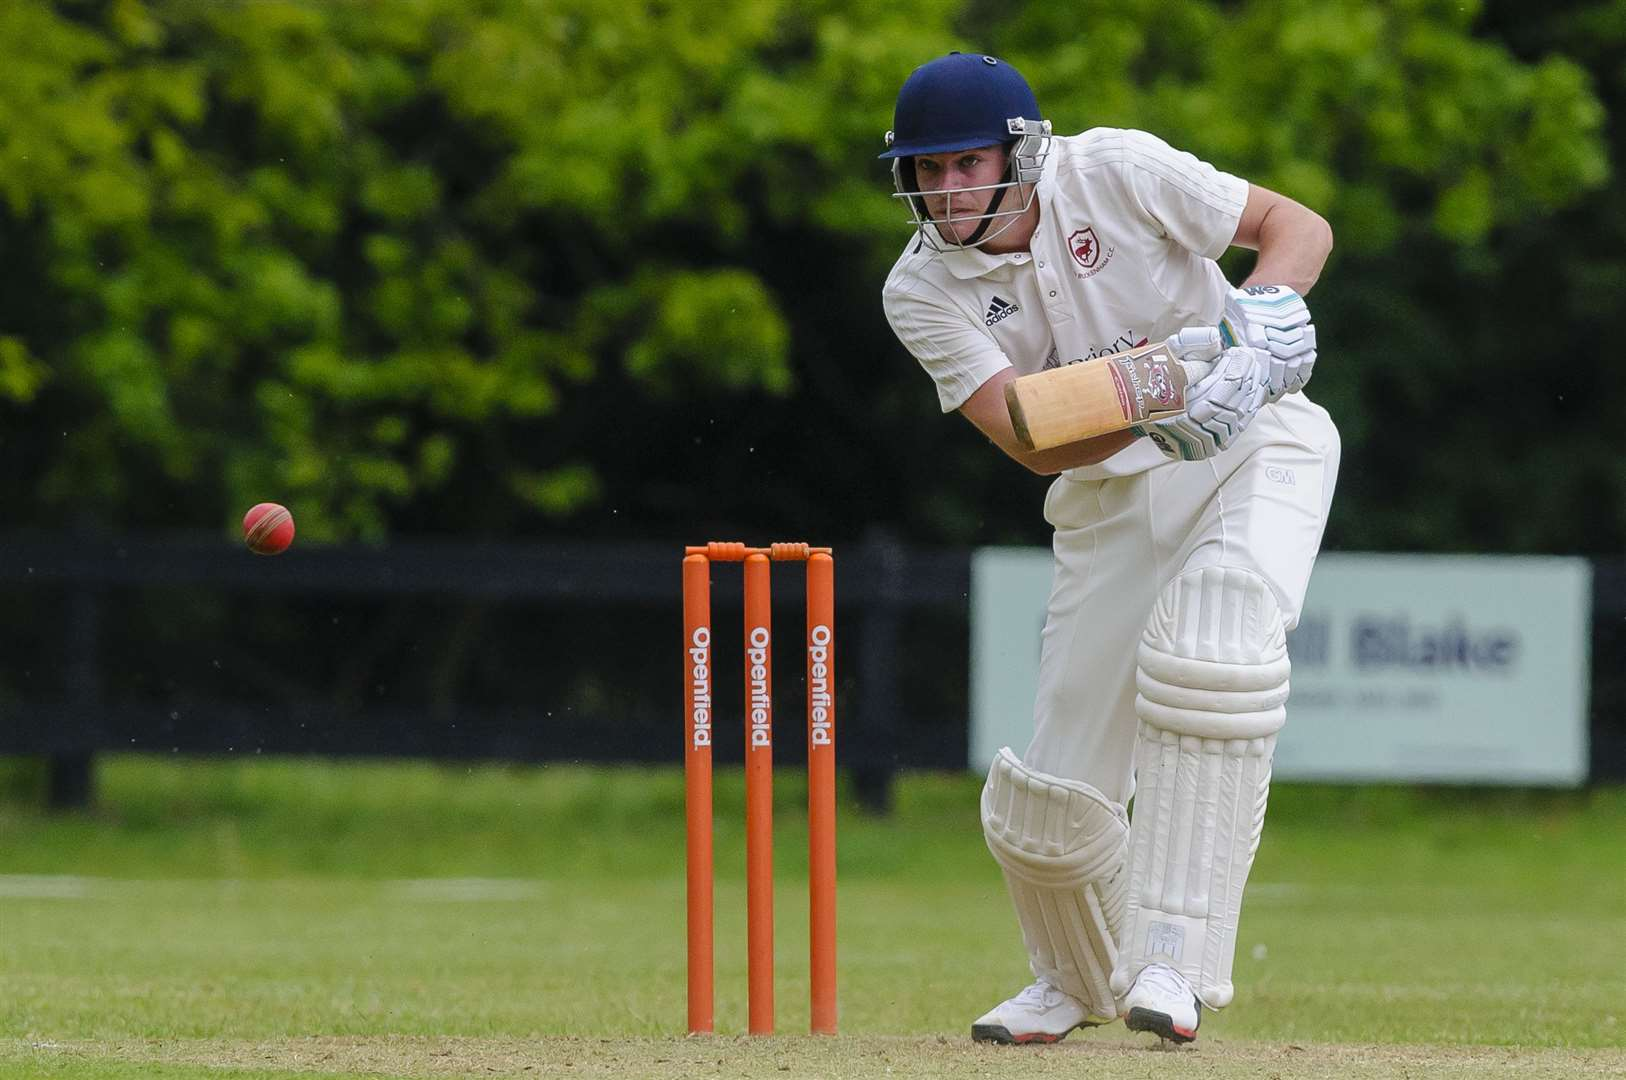 Rob Thurley of Old Buckenham in bat during the Alliance Premier League match between Old Buckenham and Sprowston...Picture: Mark Bullimore Photography. (34315726)